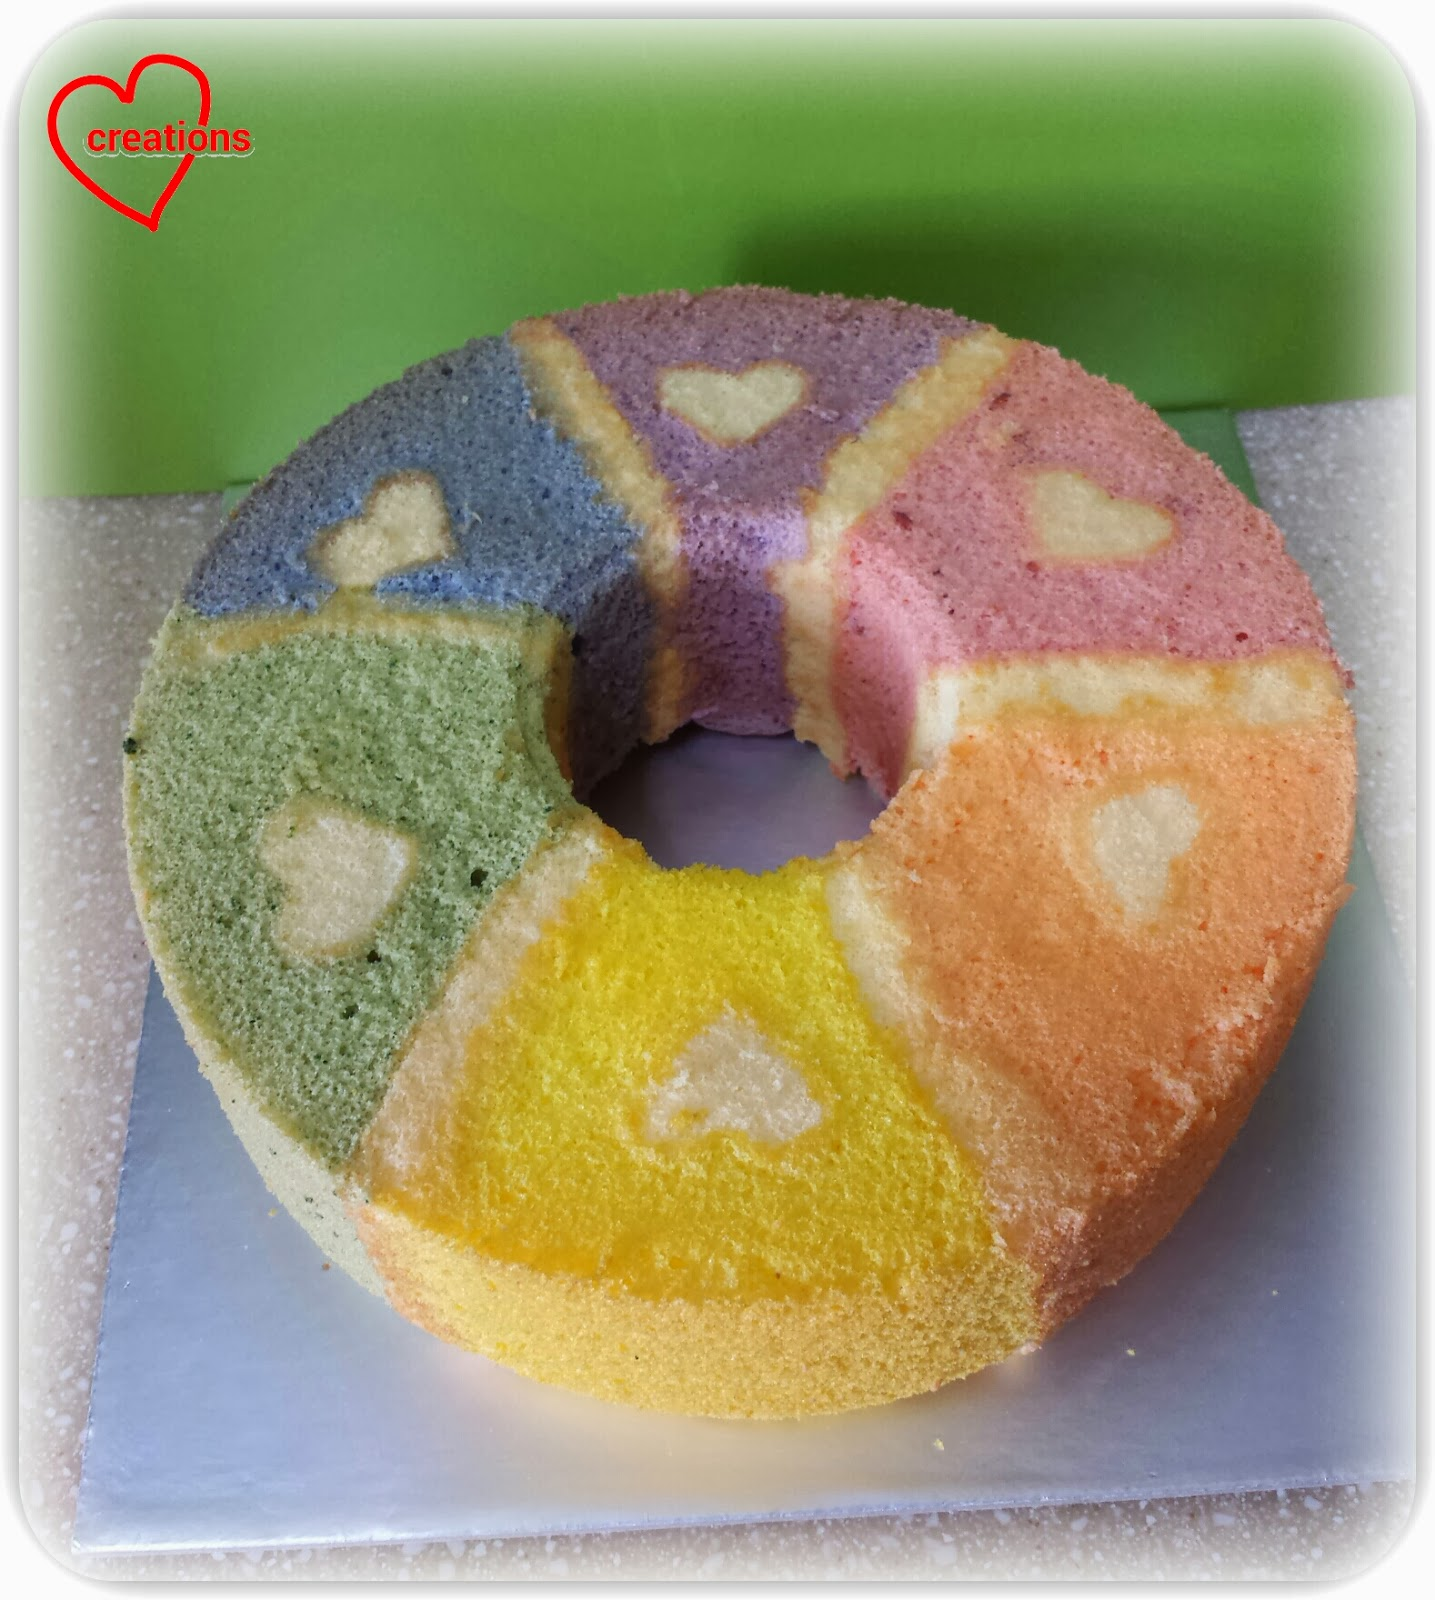 ... rainbow chiffon cake with 6 flavours embedded into the cake and also a